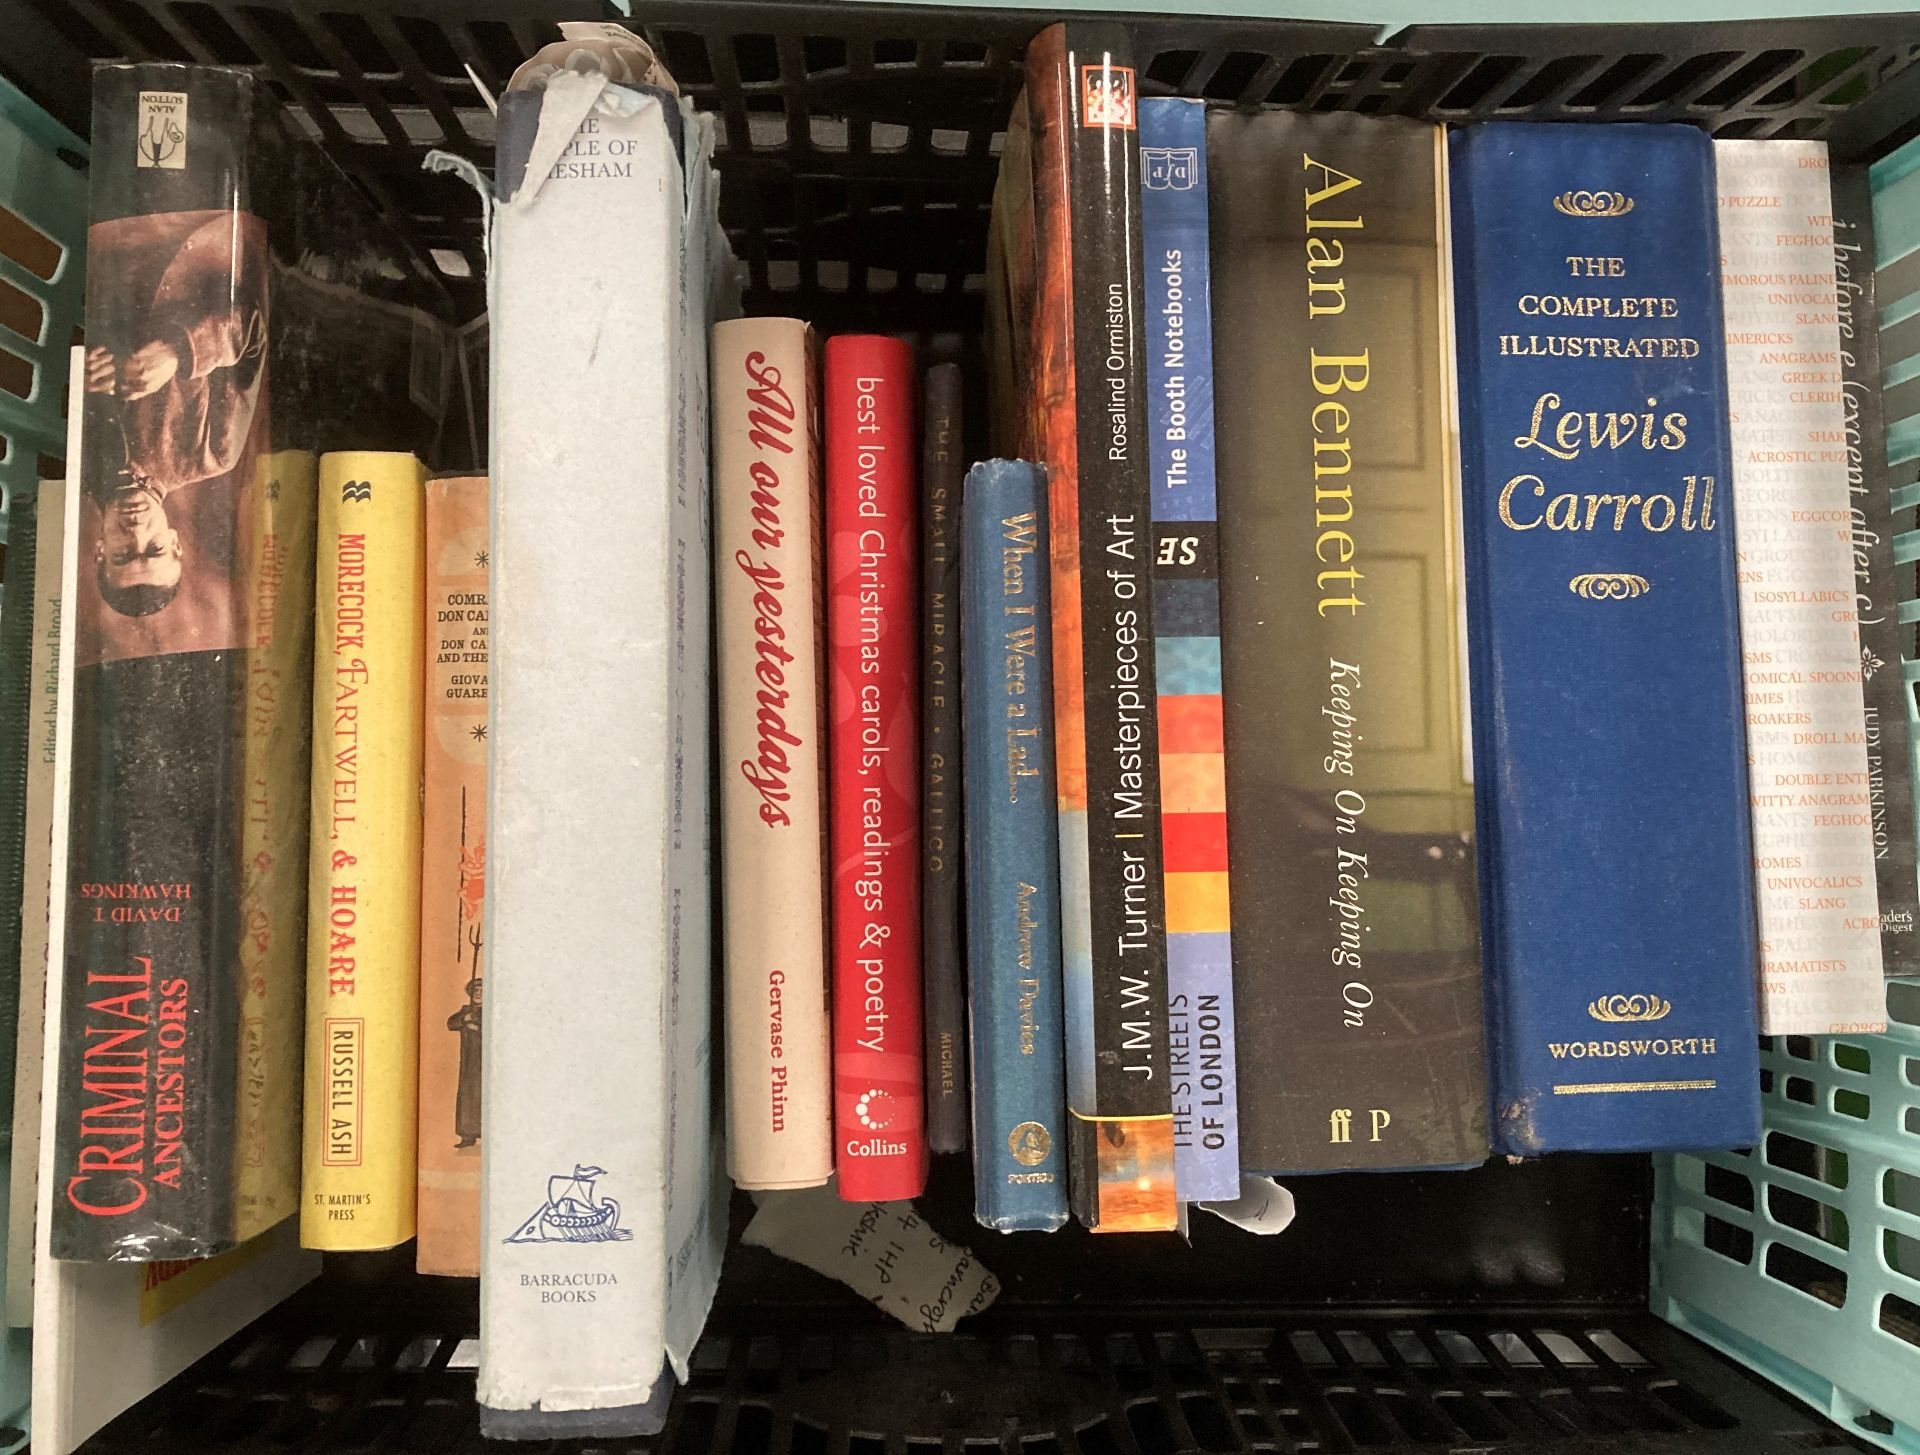 Contents to four boxes books on English Literature, poetry, biographies, religion etc. - Image 2 of 5